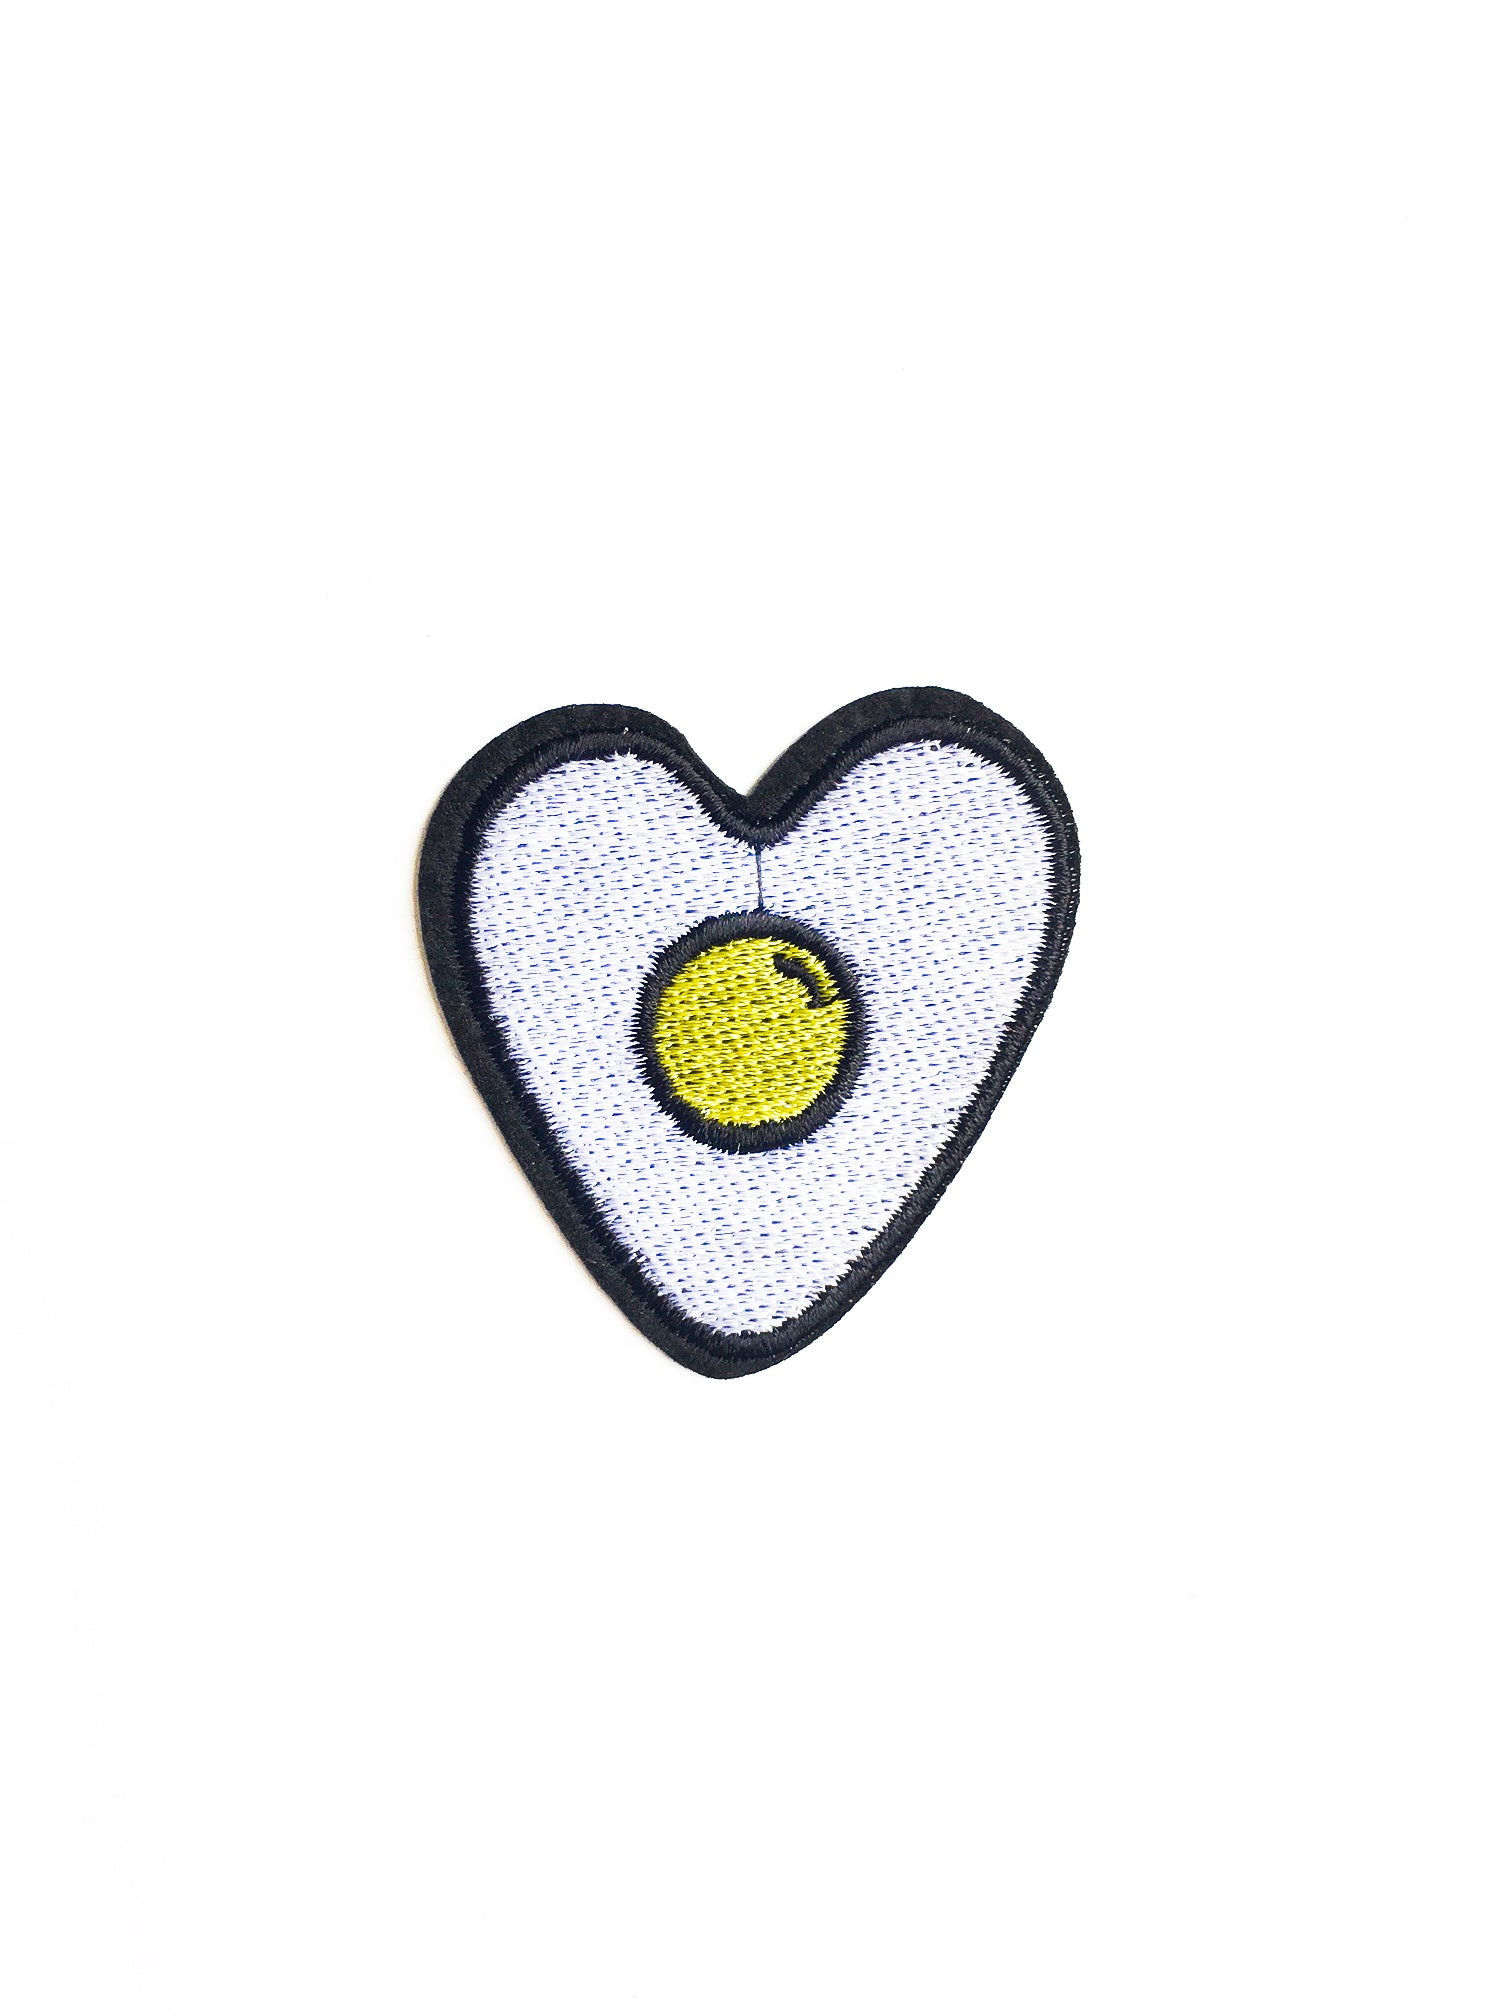 Heart Egg Iron on Patch